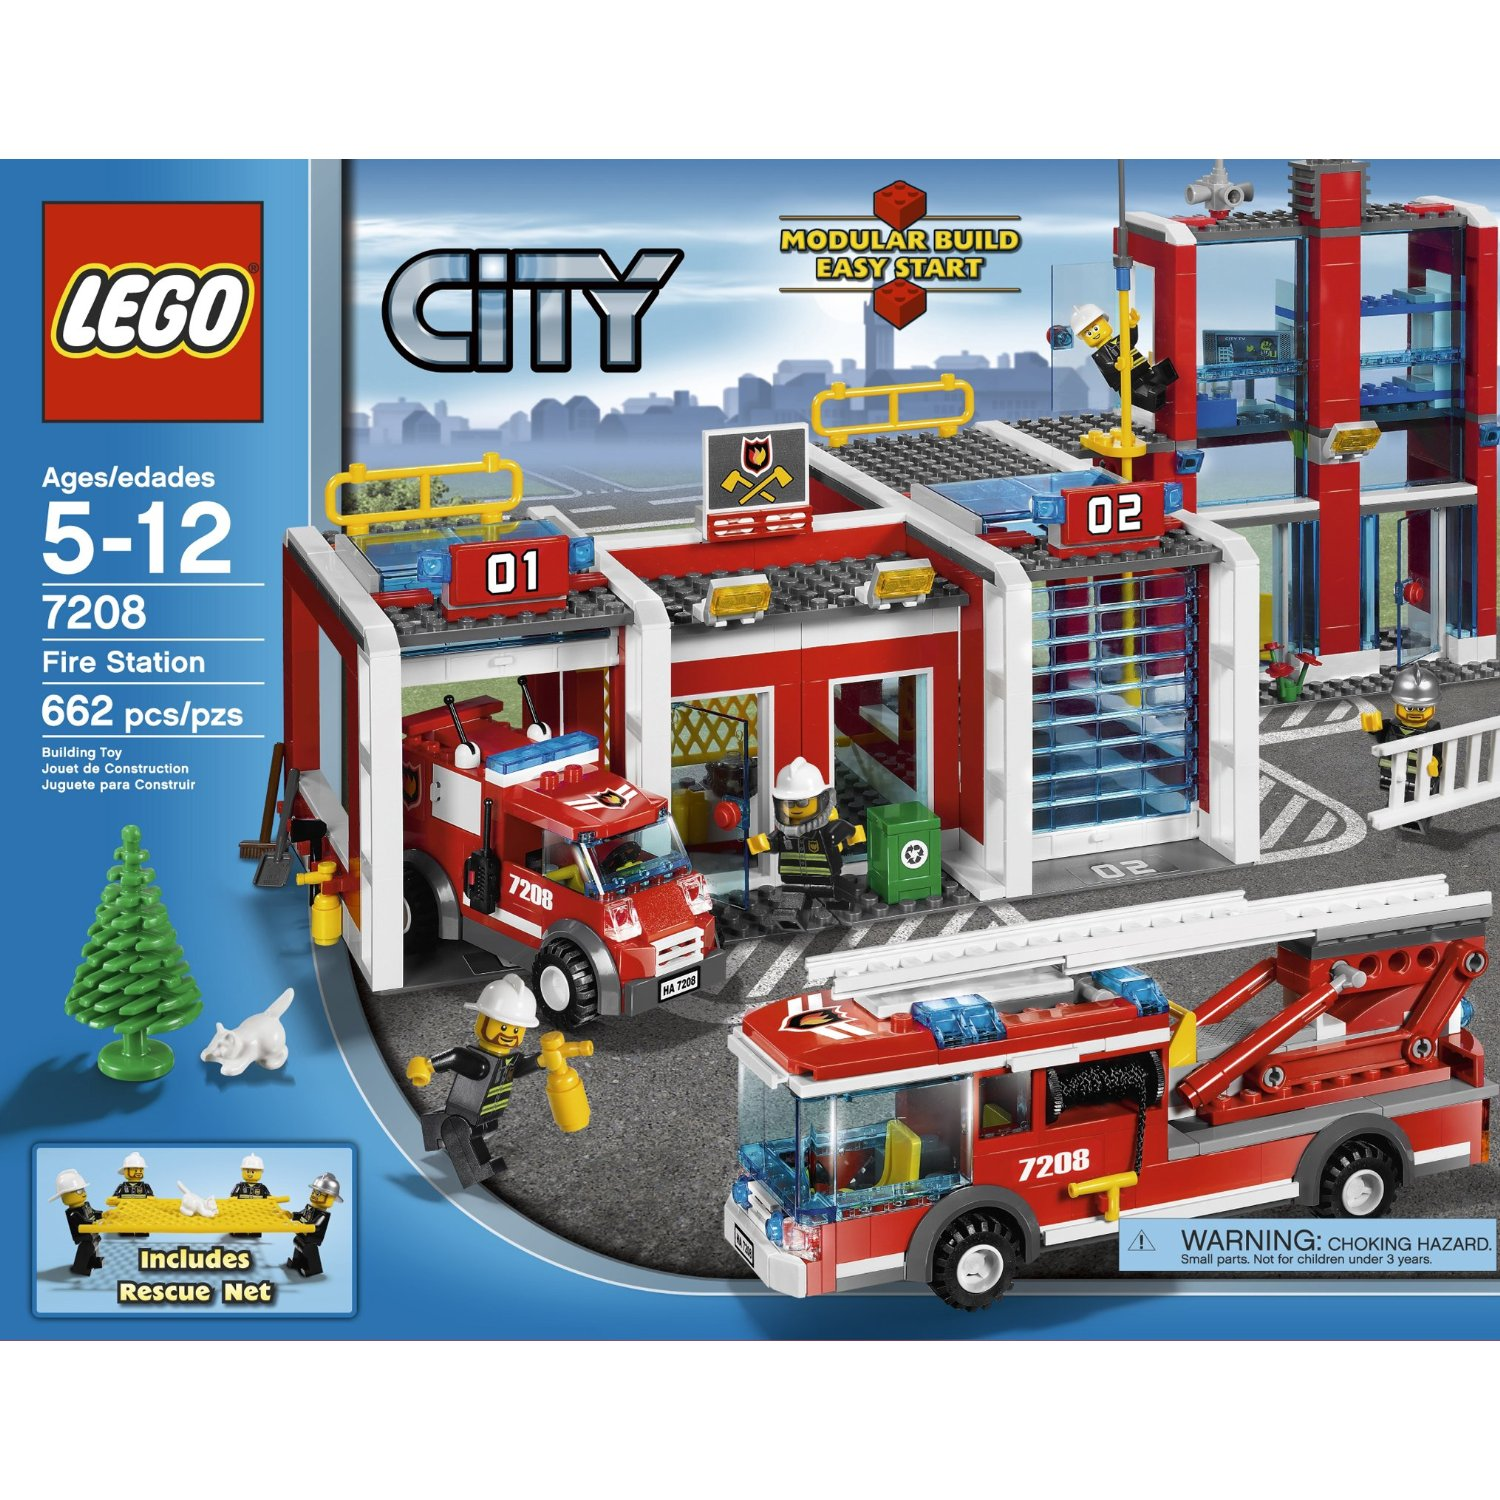 ... Fire Station 7208 Building Toy /Toys & Hobbies/Building Toys/LEGO